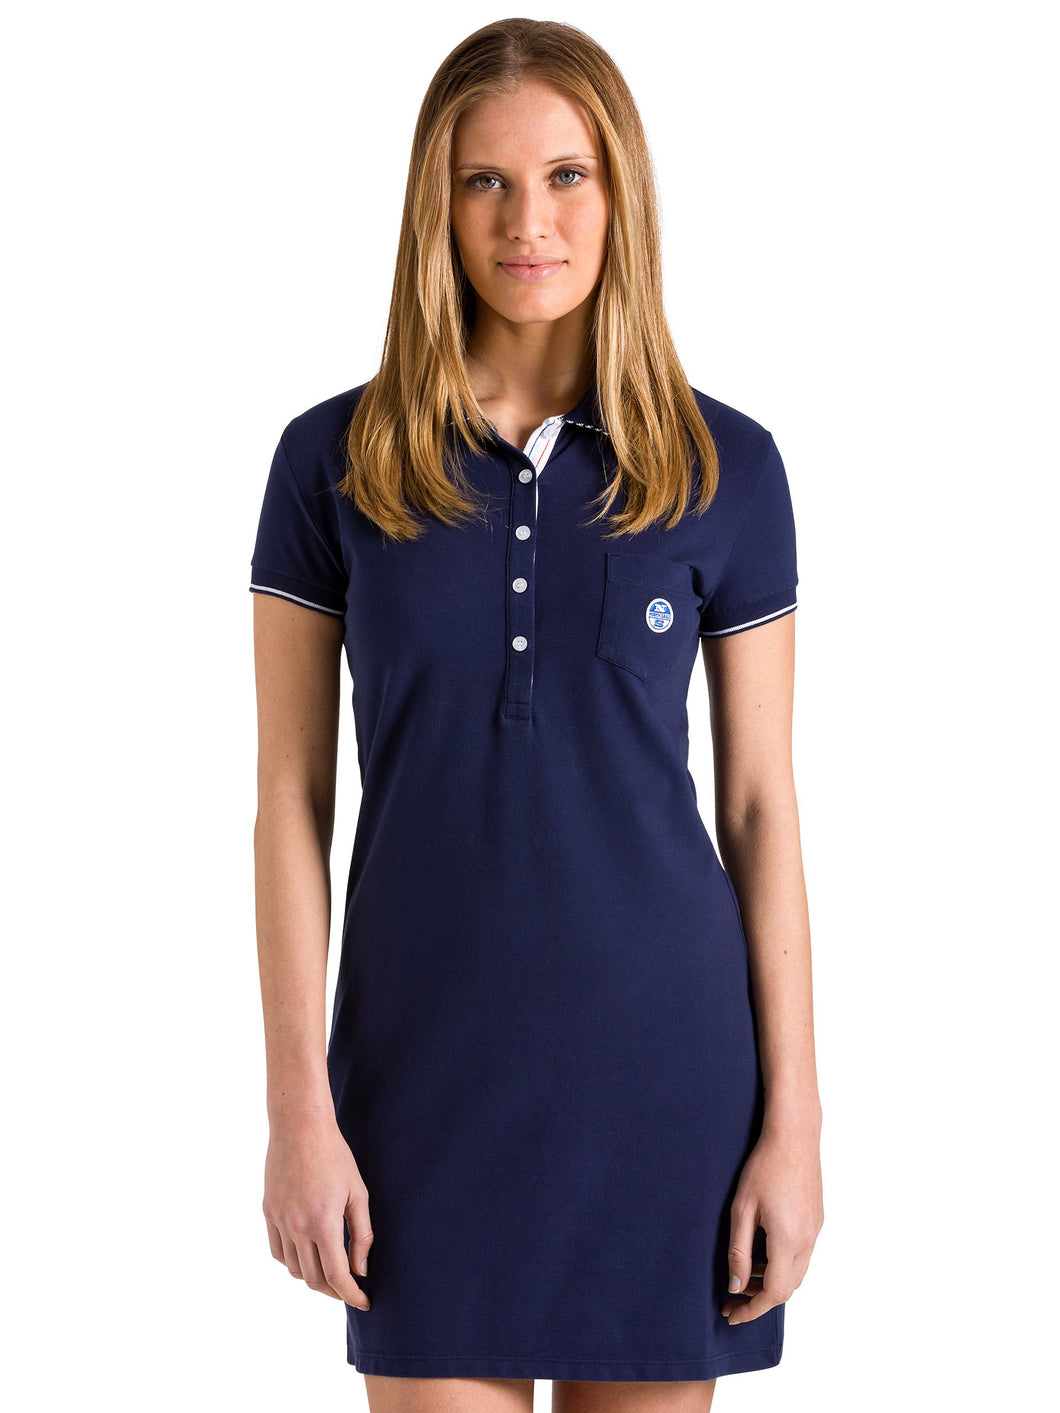 North Sails Womens Polo Dress